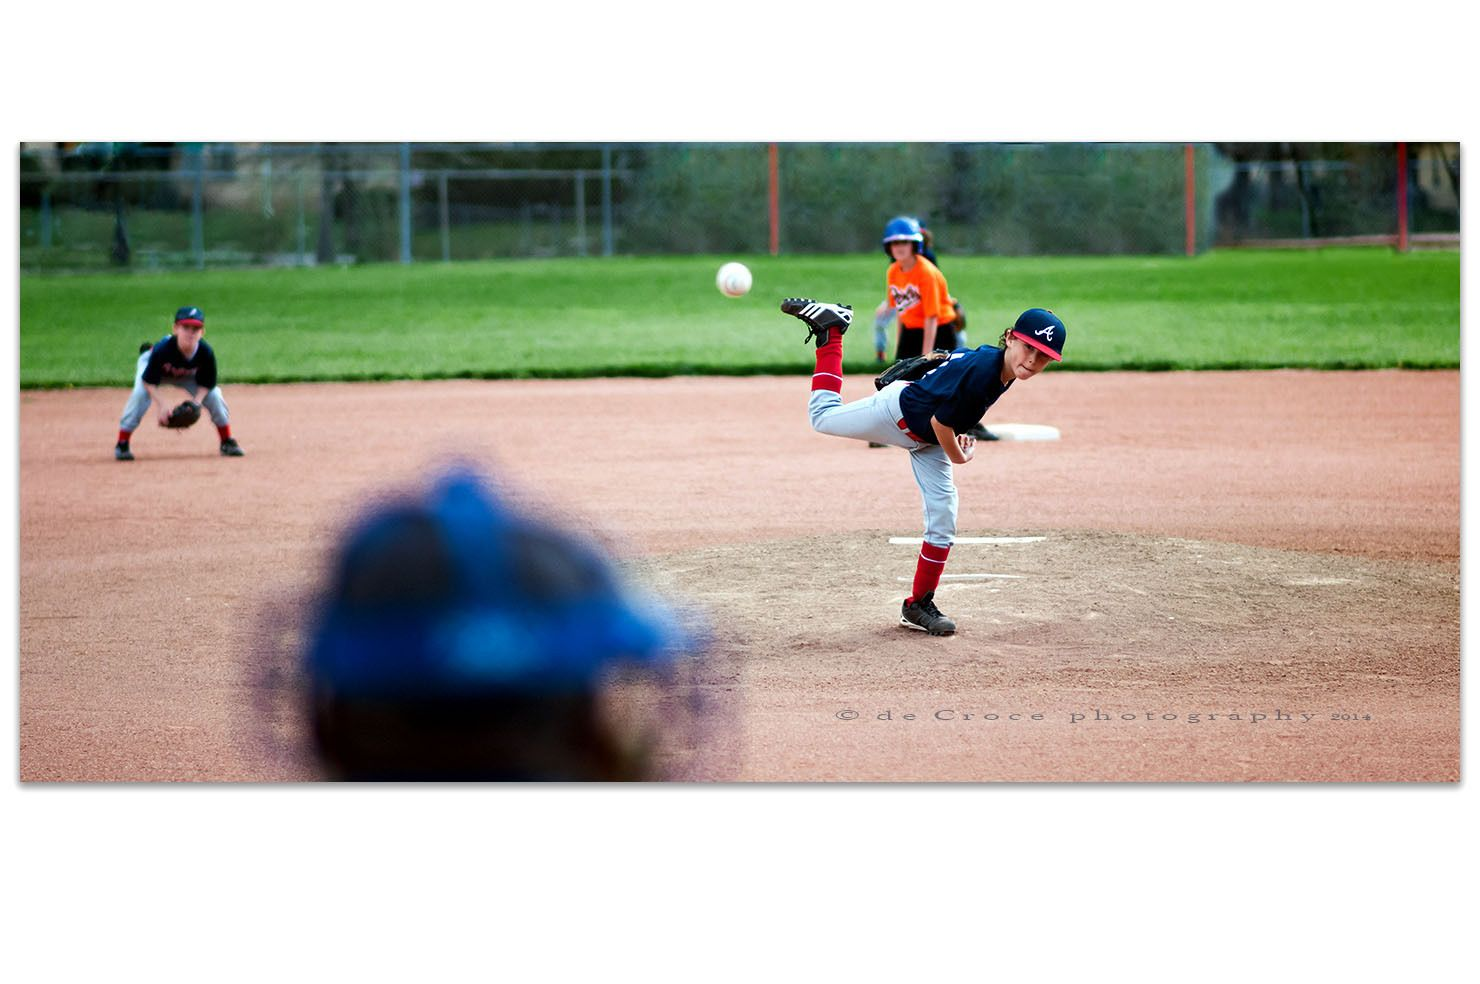 1baseball_pitching_boy